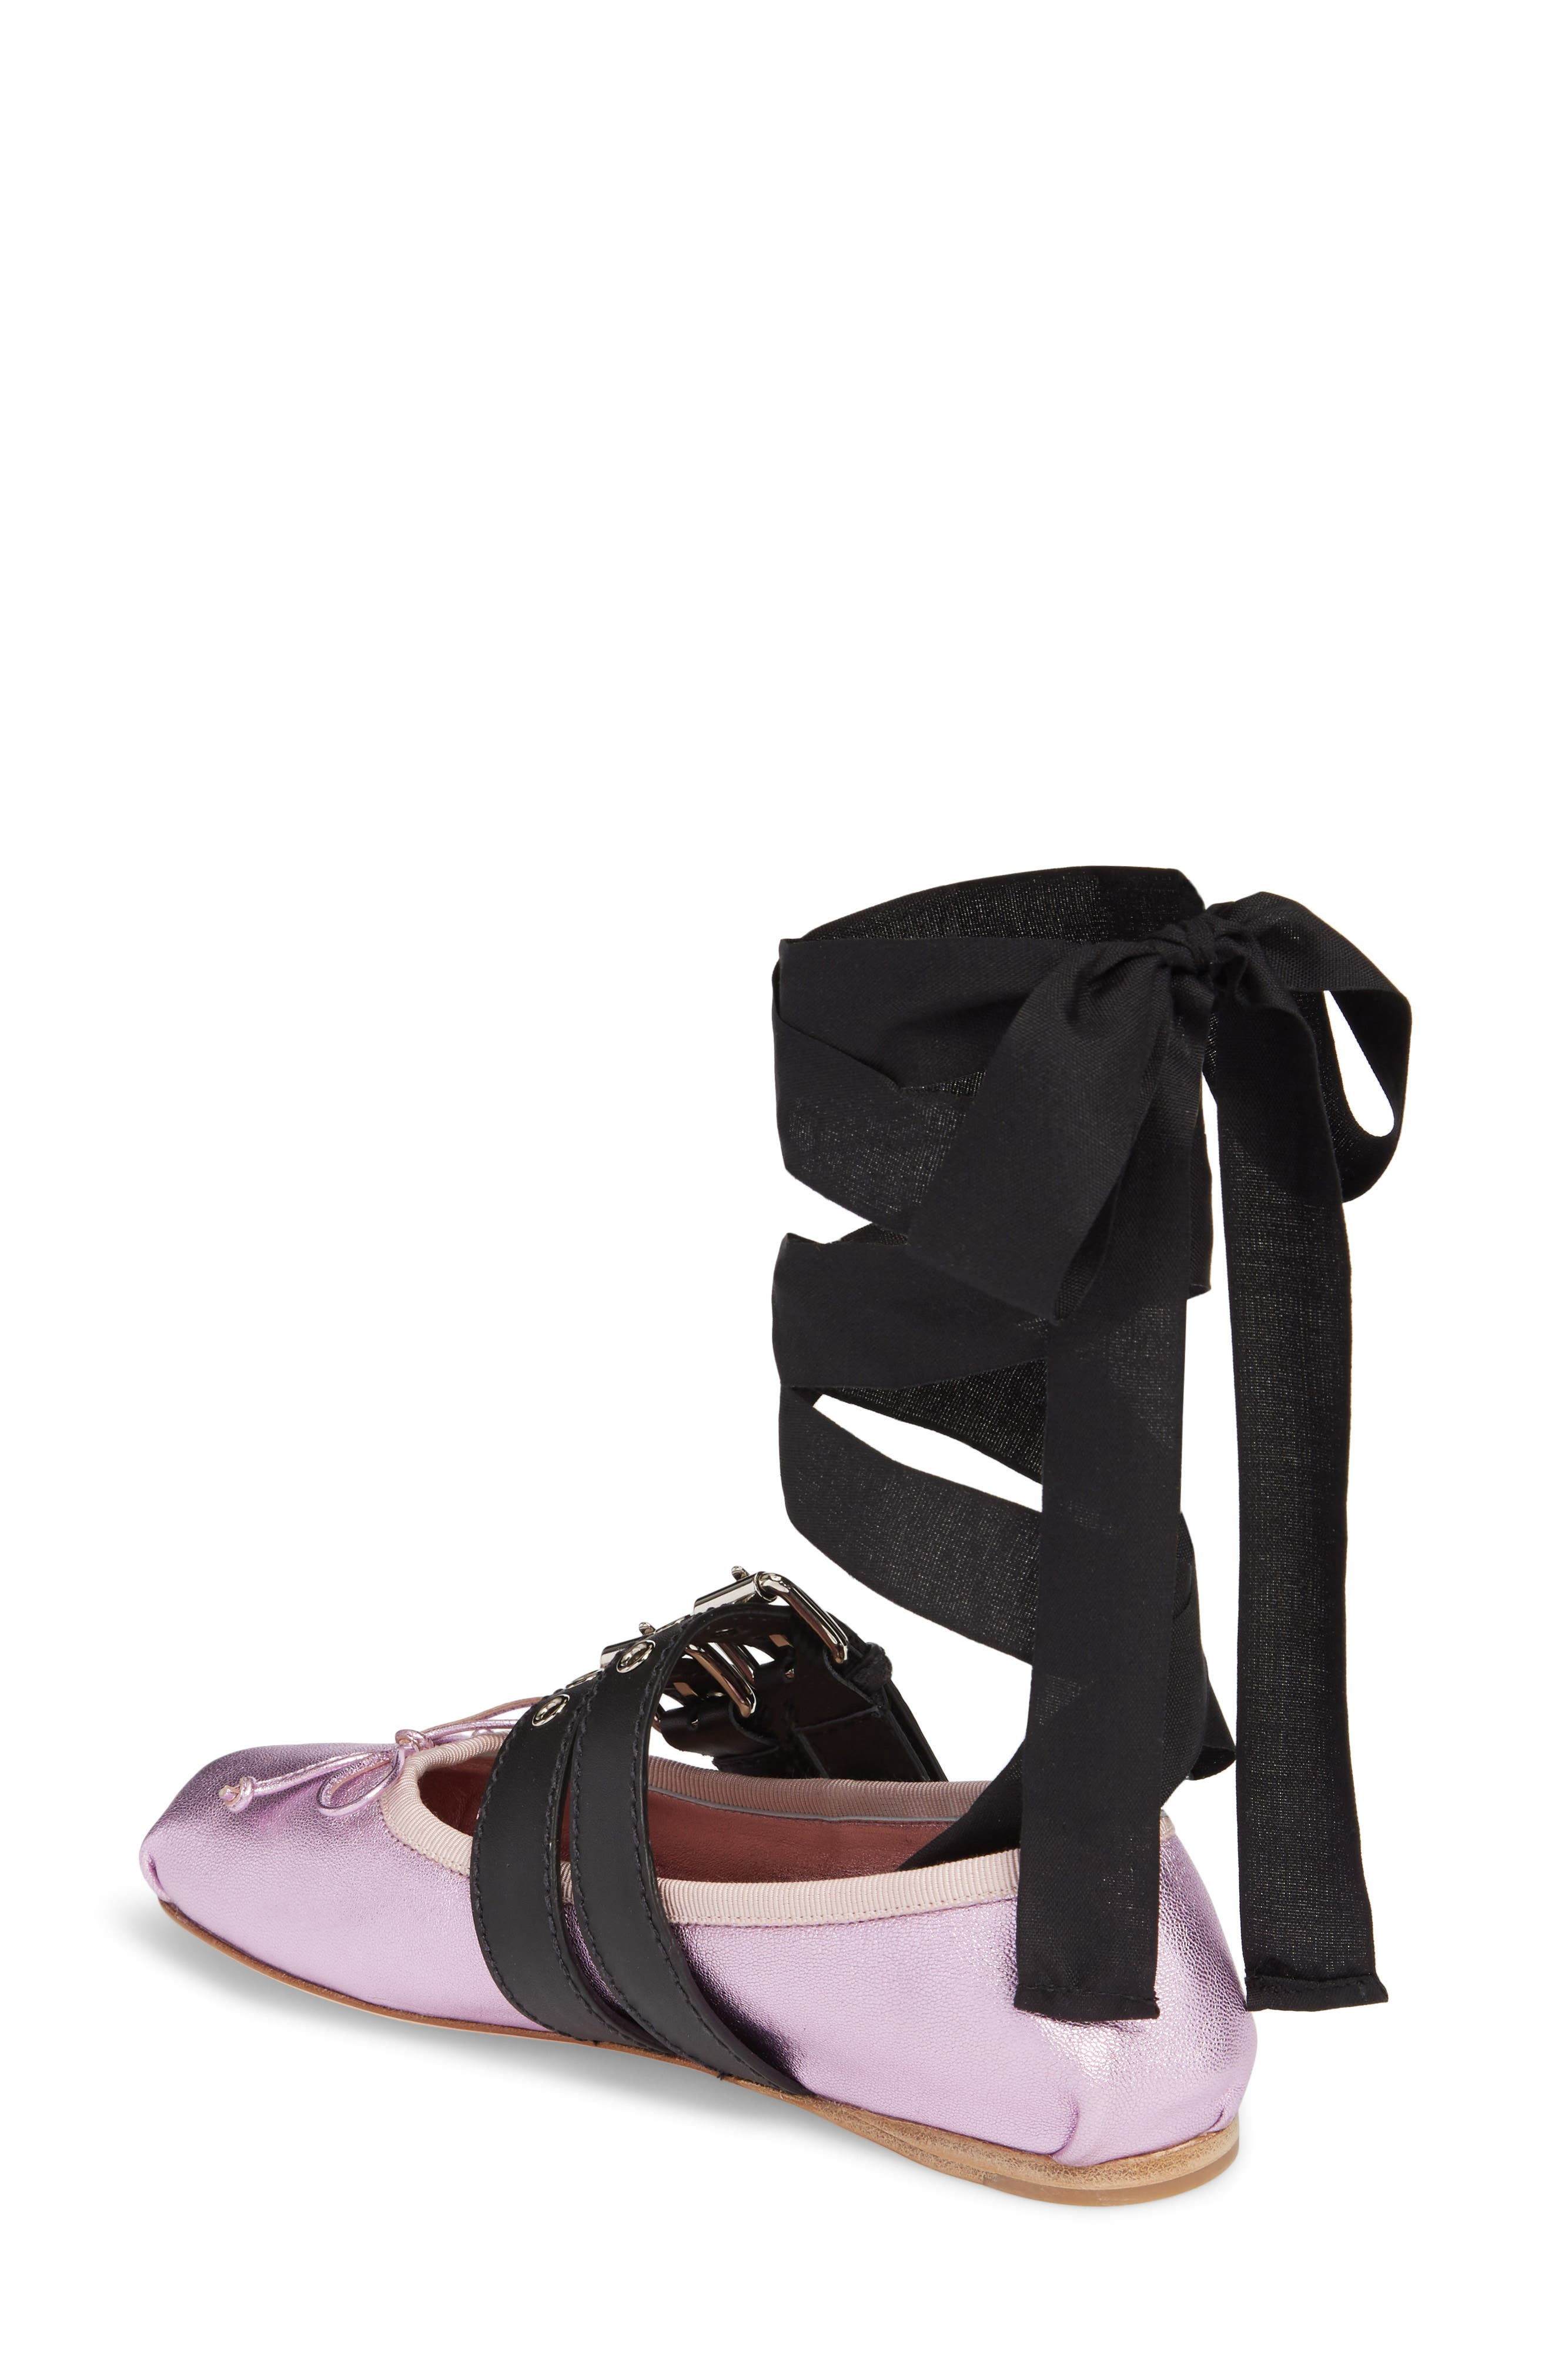 MIU MIU,                             Lace-Up Ballerina Flat,                             Alternate thumbnail 2, color,                             650